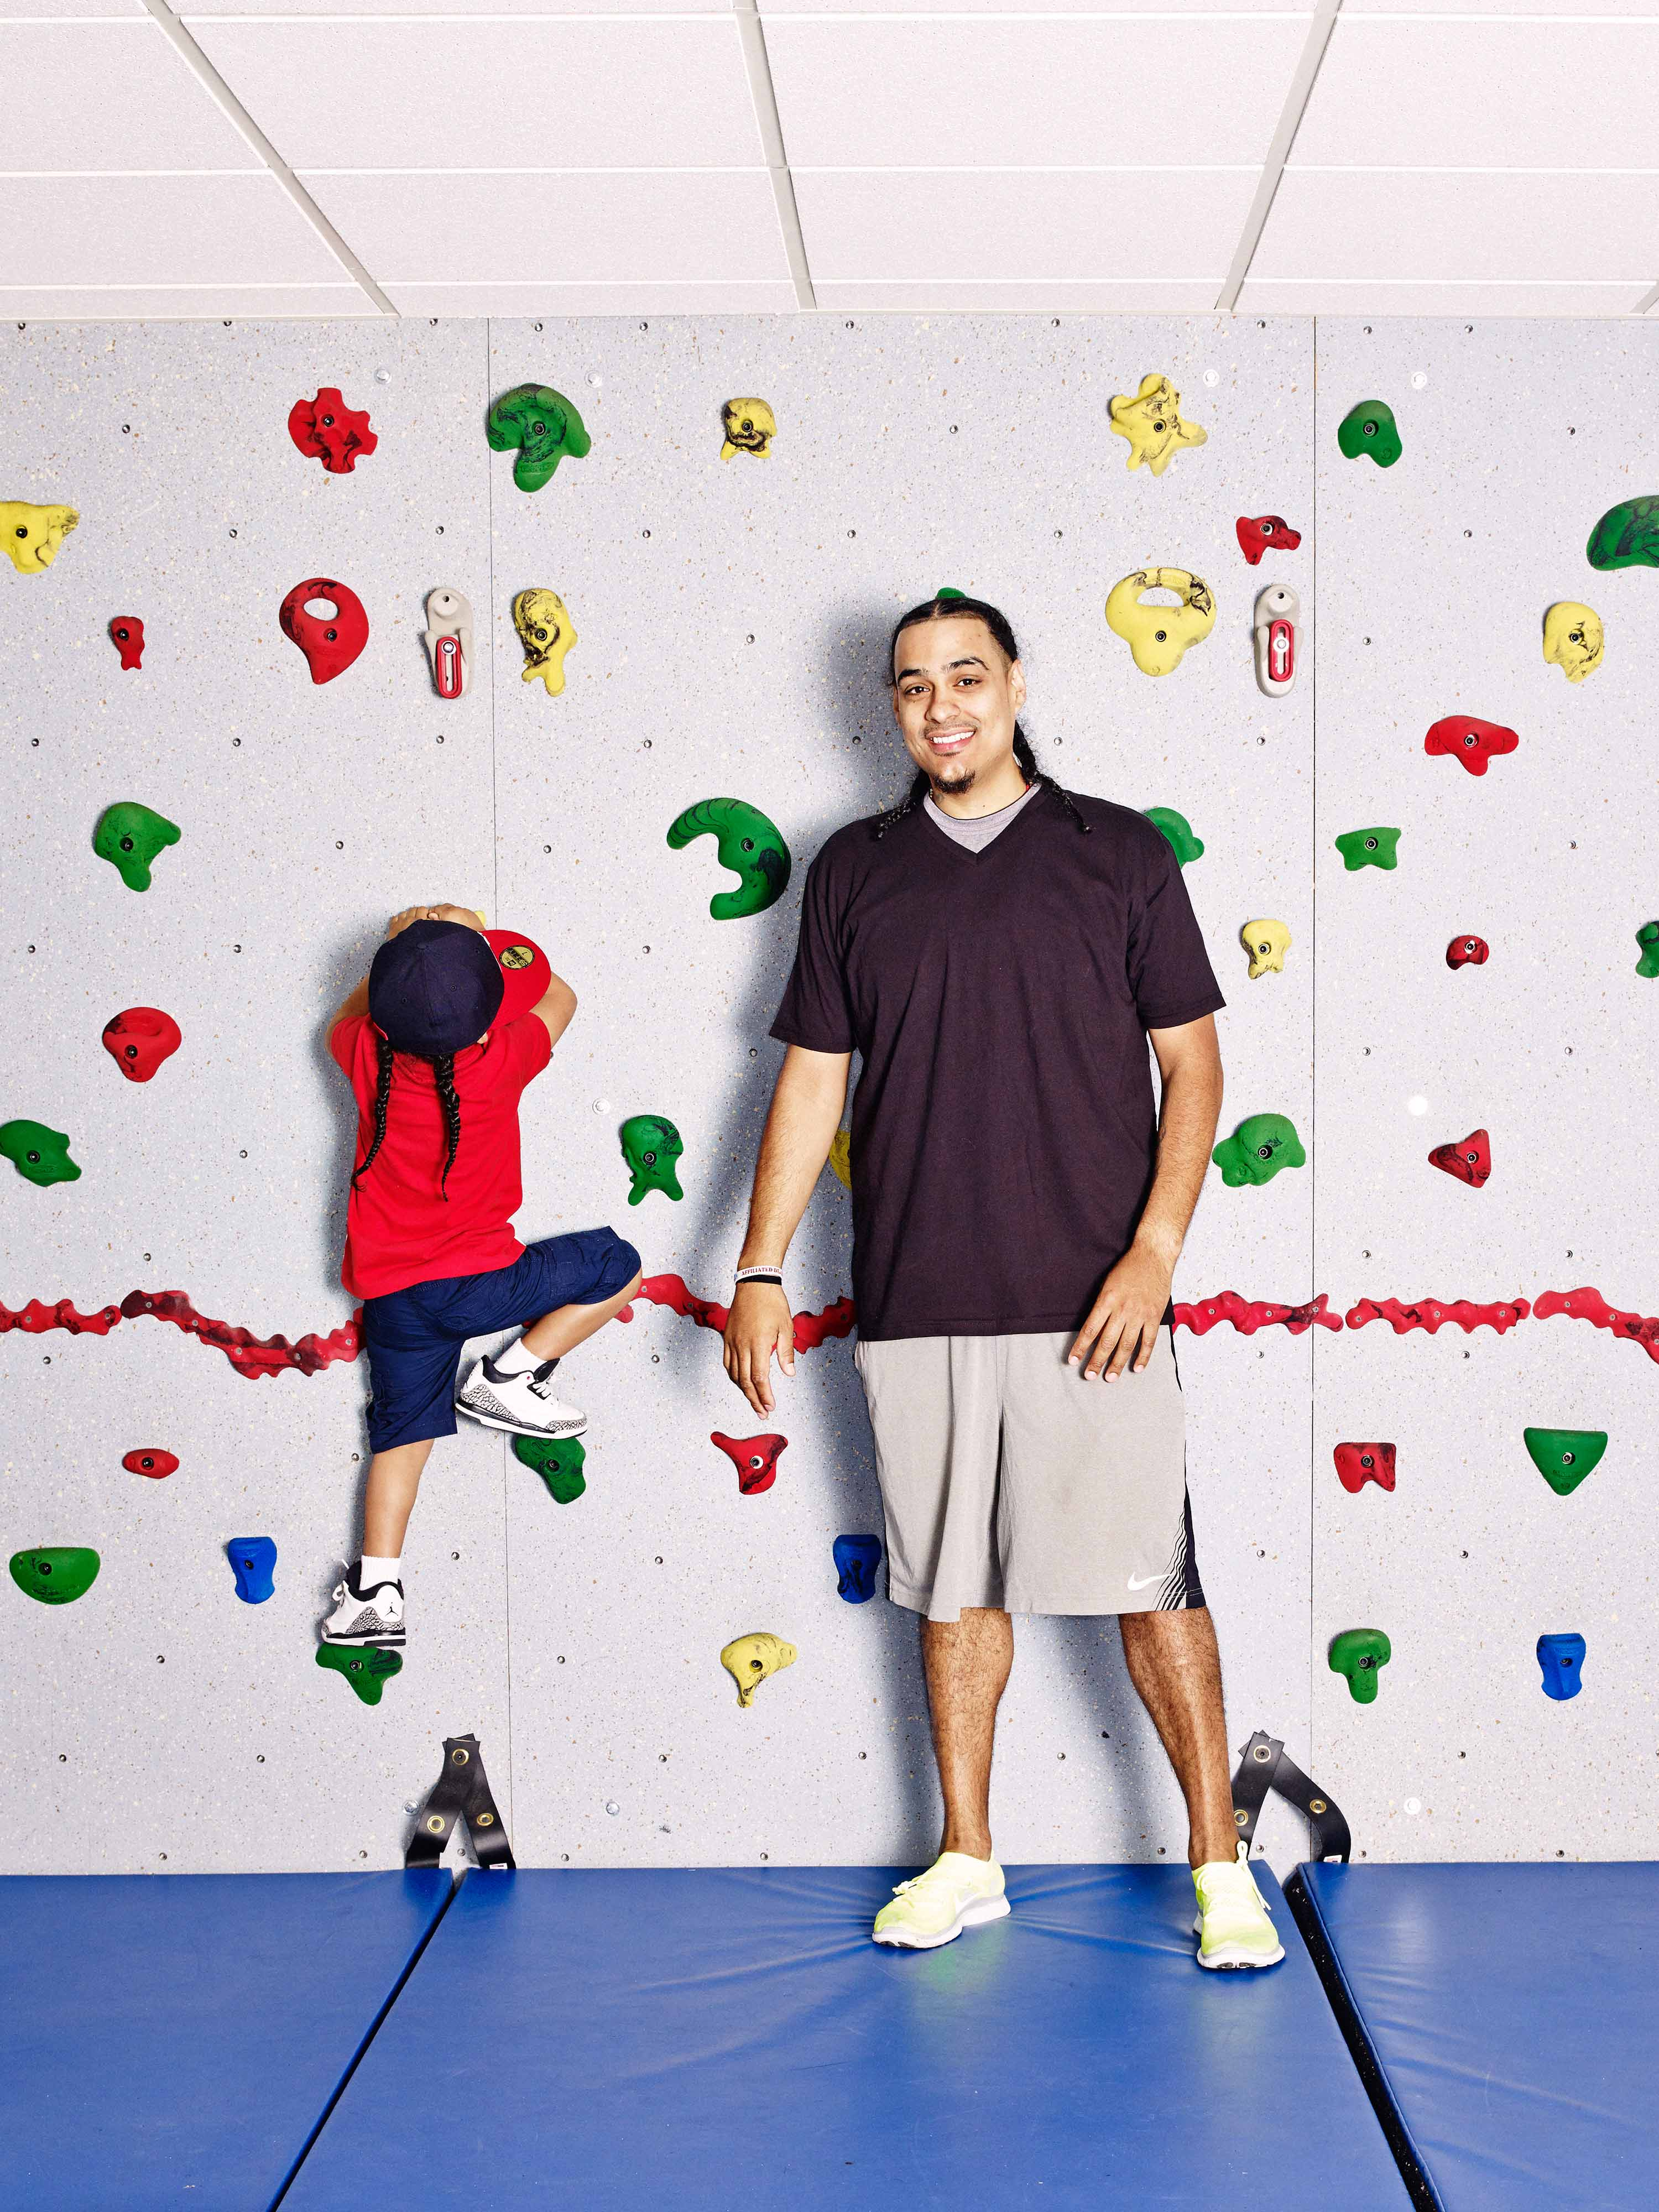 By the time he was 27, Luis Giuria, a South Bronx native, weighed 400 lb. But he has lost nearly 200 pounds thanks in part to living in Arbor House, a low-income housing project that emphasizes active design, an increasingly popular style of architecture that's meant to encourage physical activity.